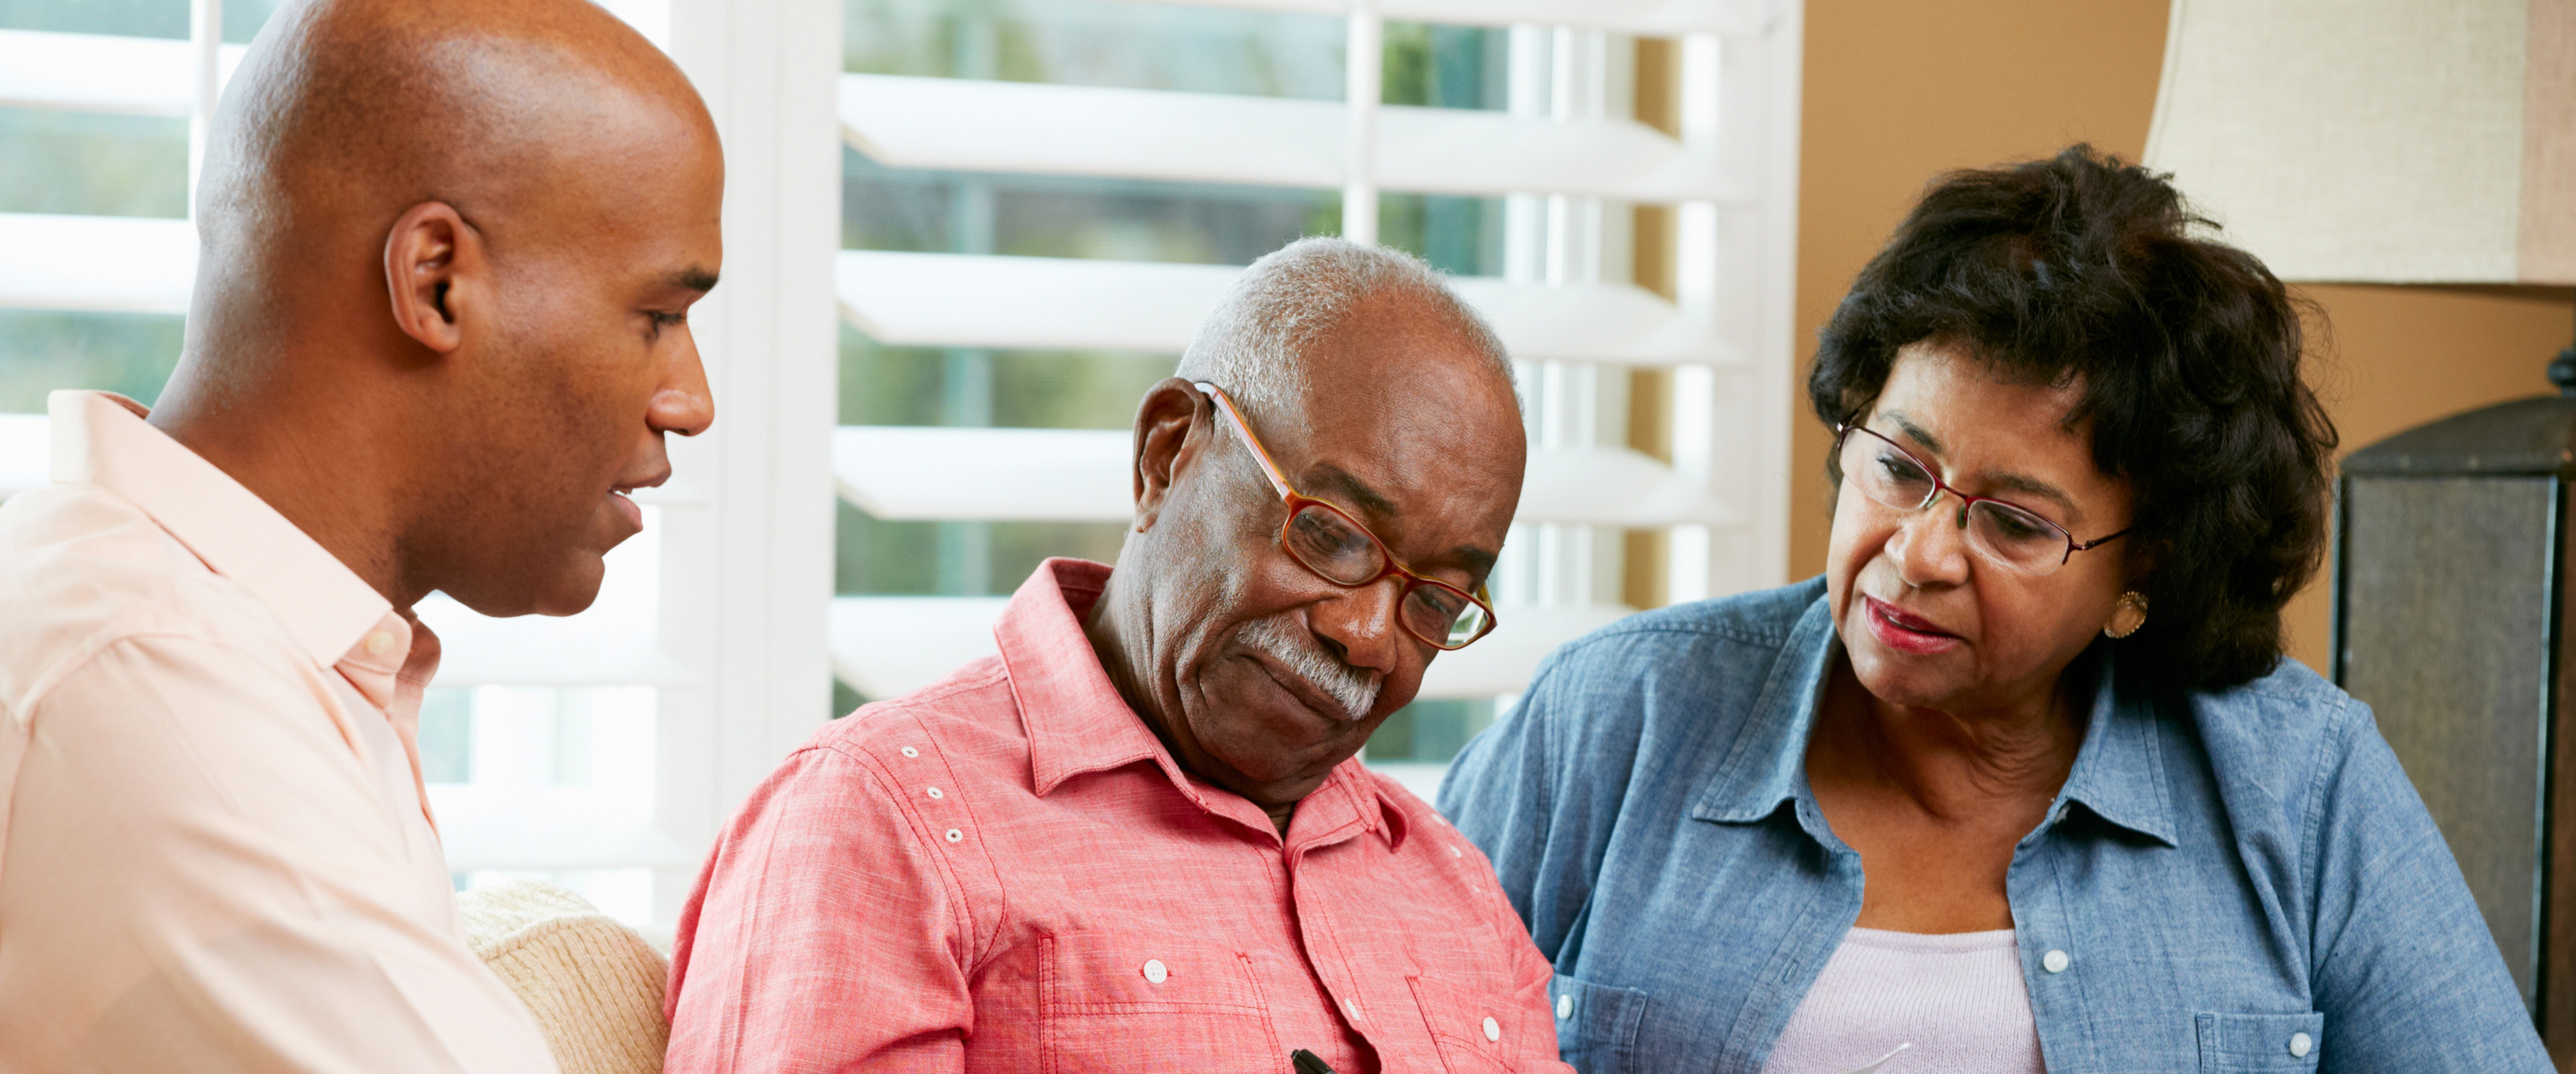 Advance Care Planning Charts: Important Documents Every Family Needs to Have